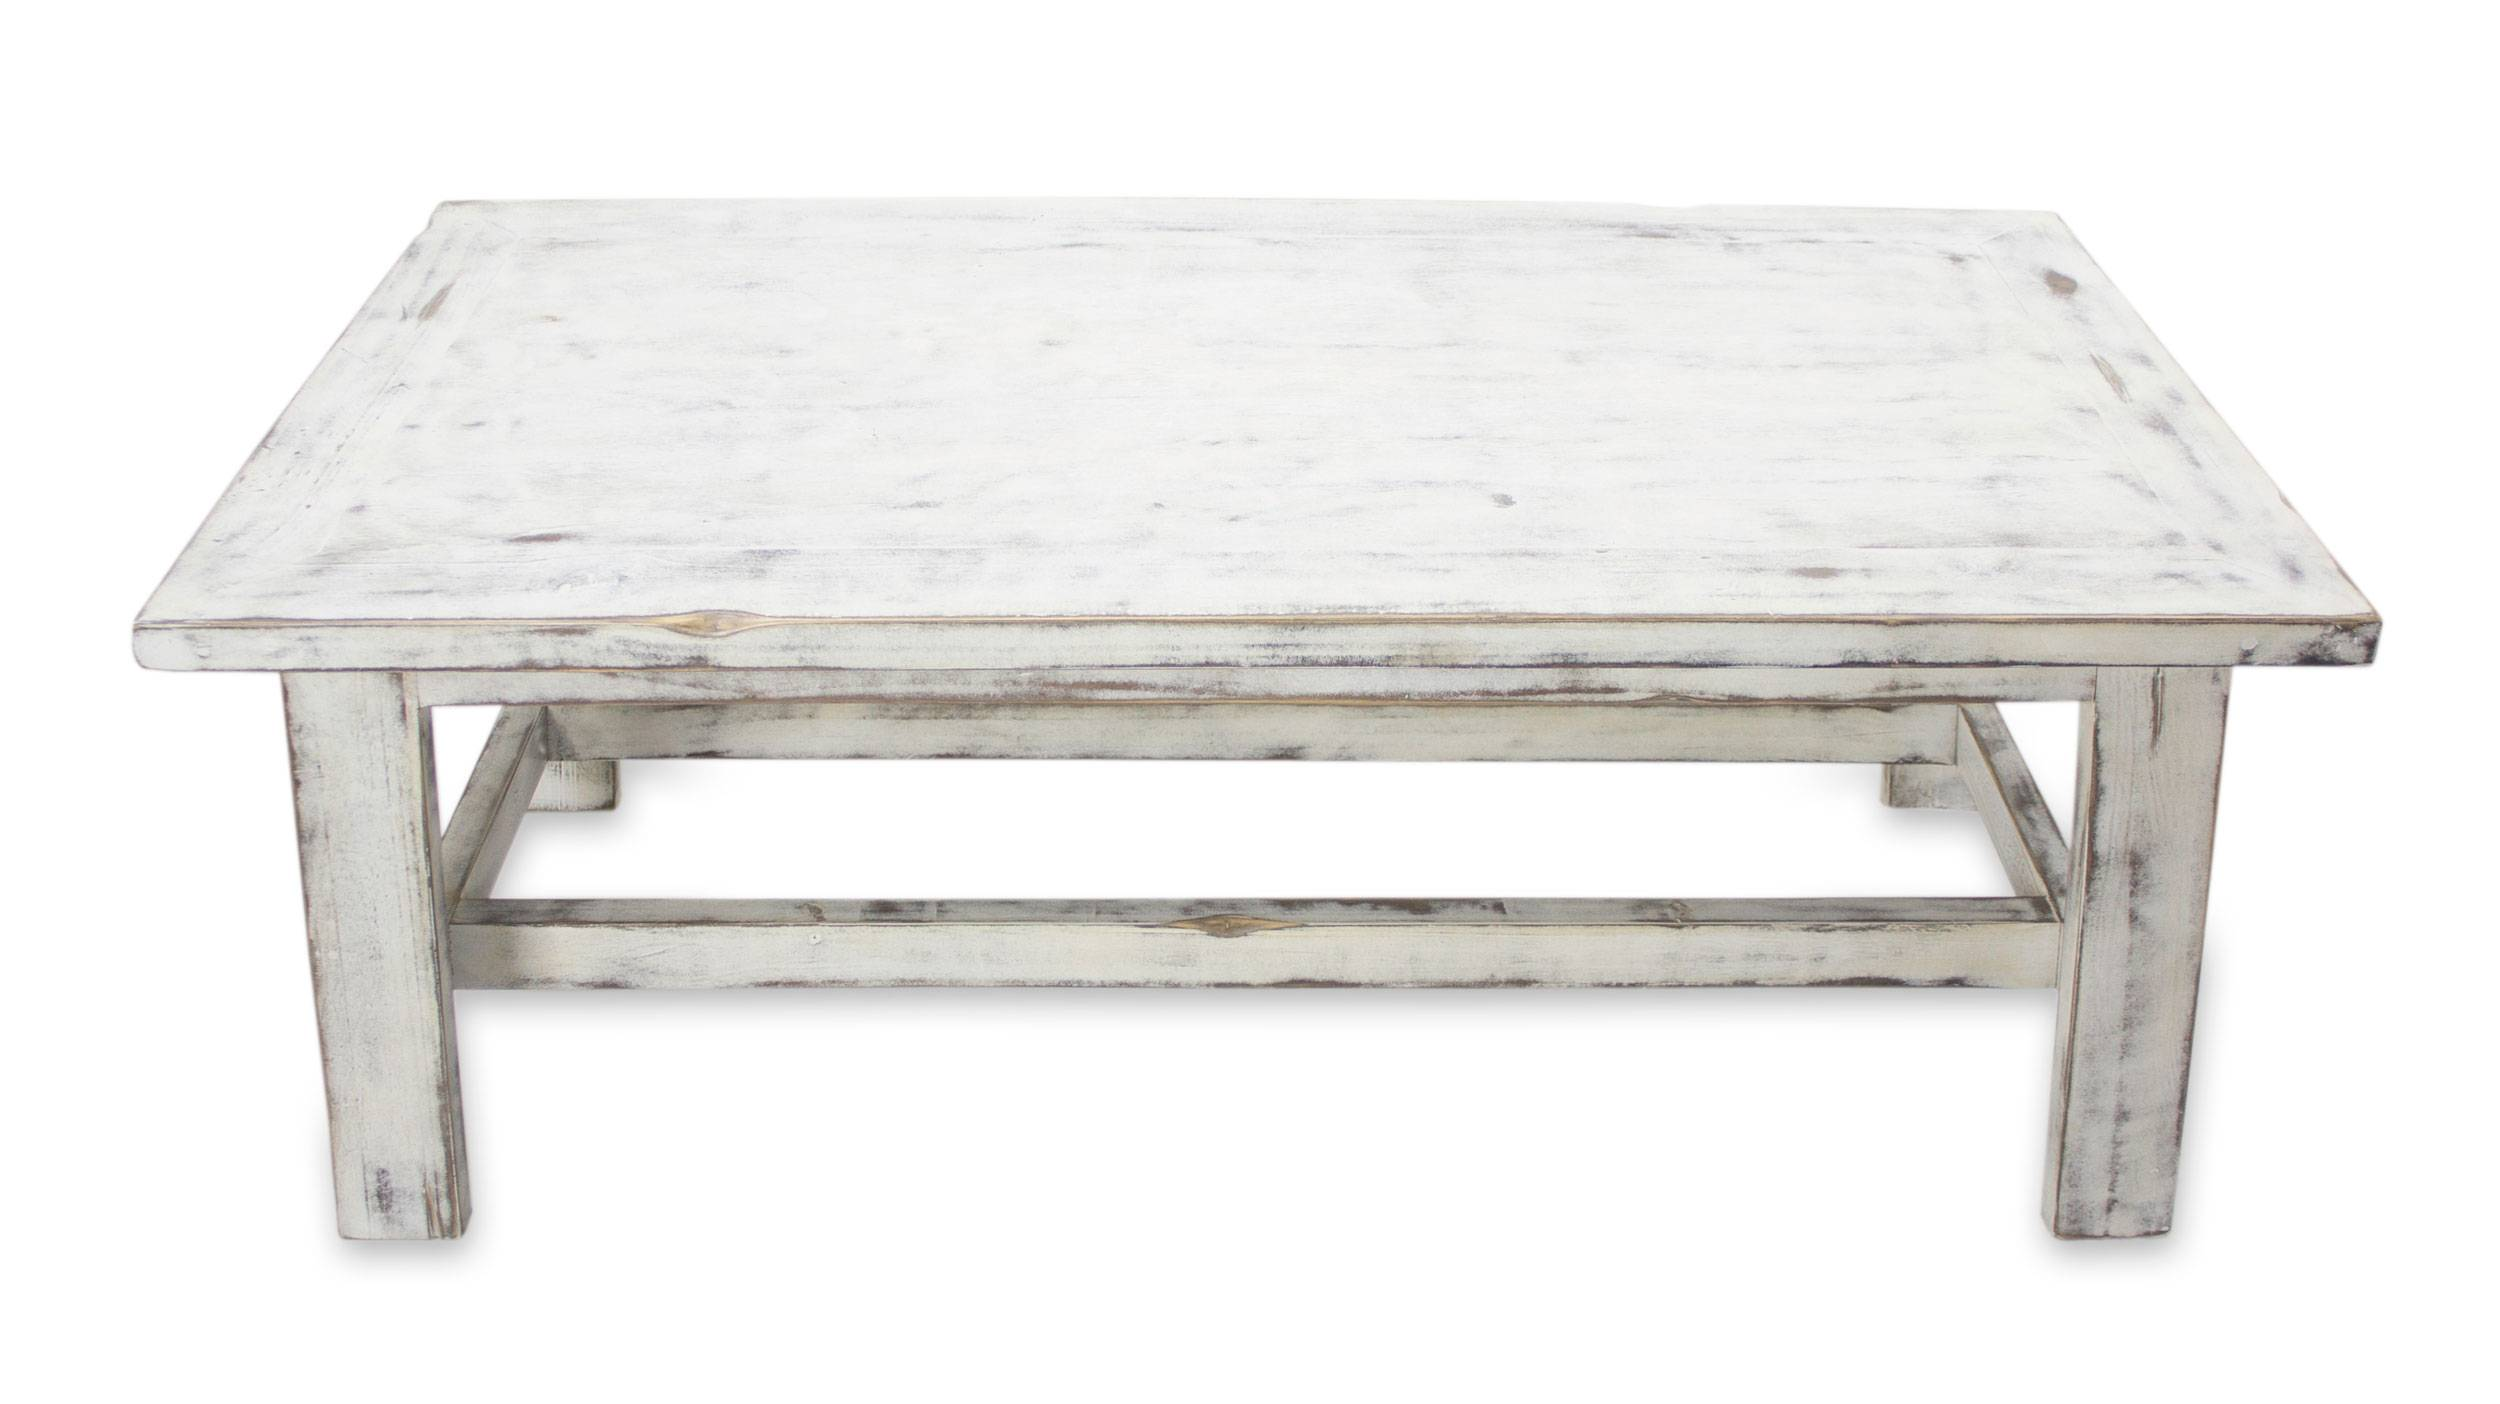 Handcrafted Rustic White Wood Coffee Table Yahualica Cloud